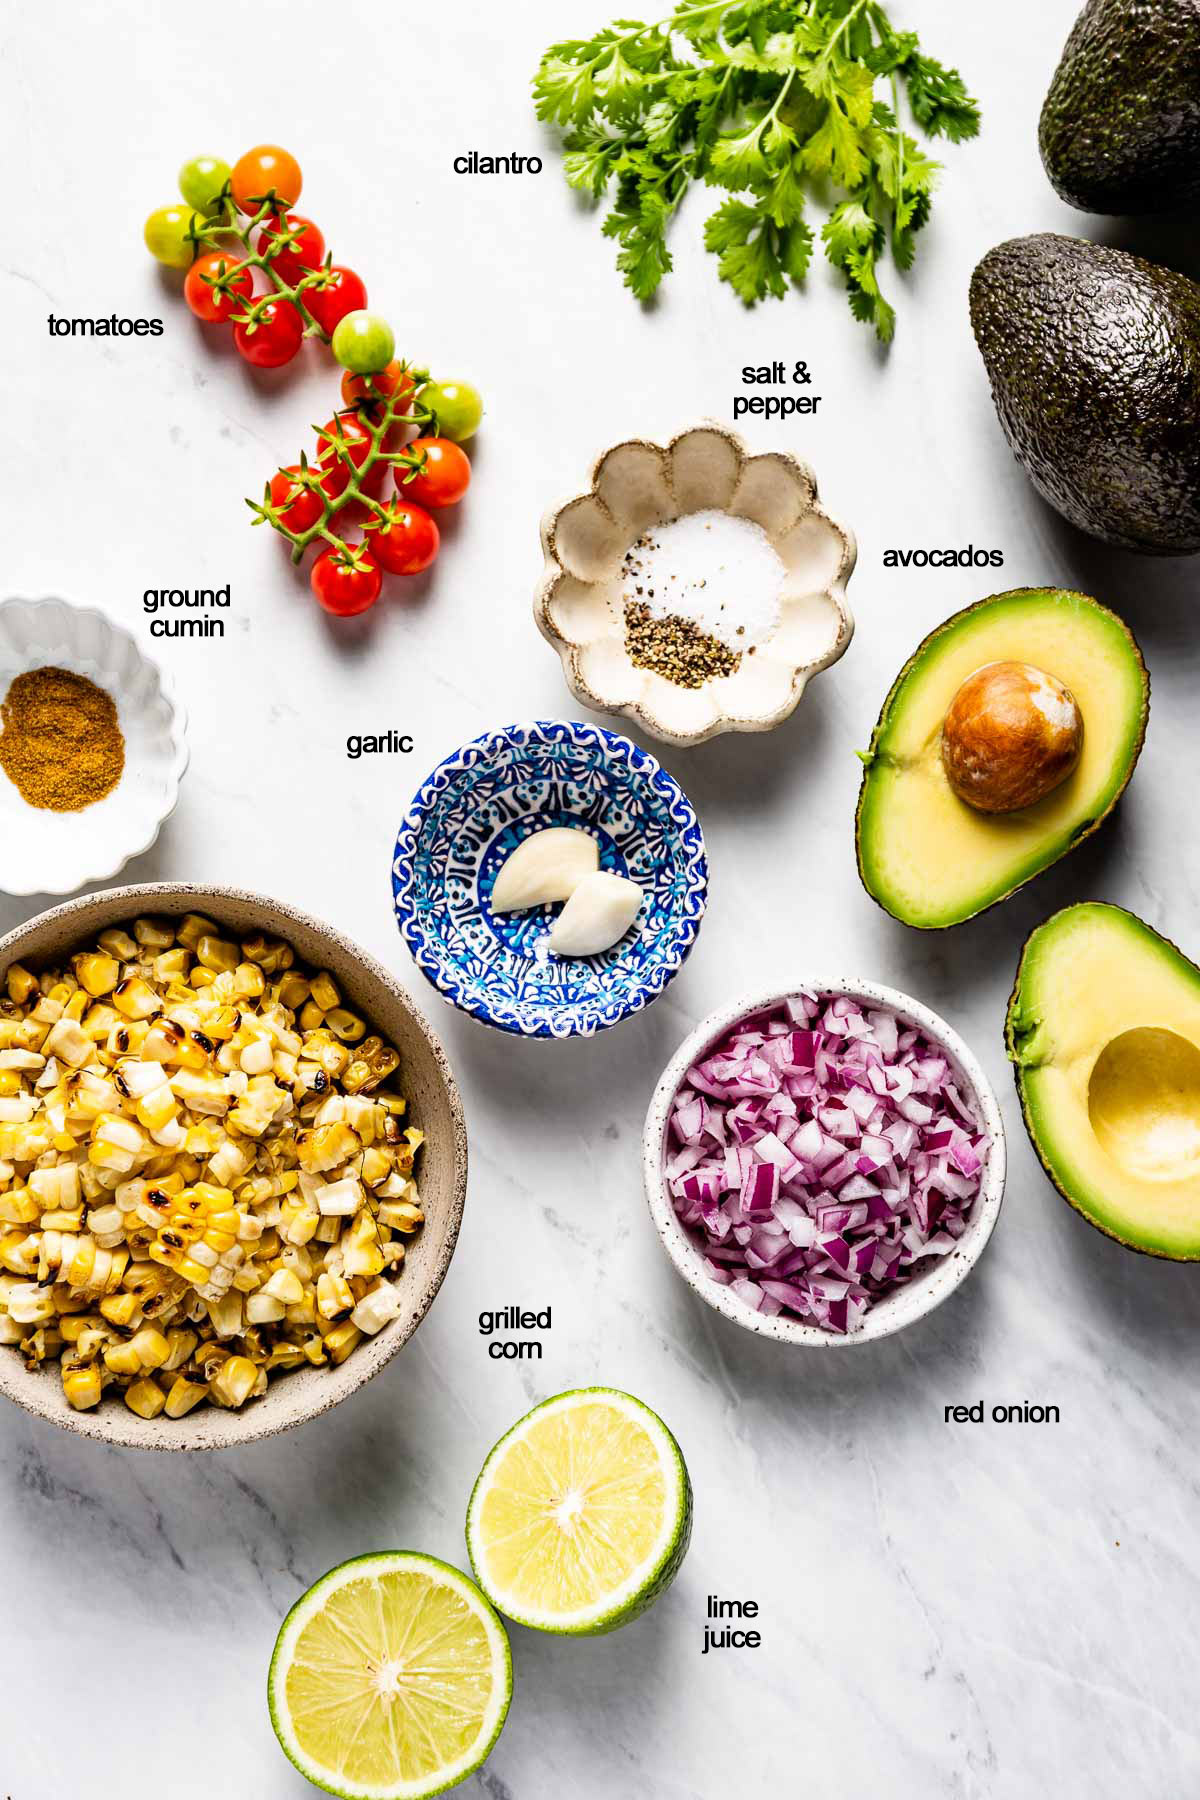 Ingredients for the grilled corn guacamole recipe portioned out on a marble backdrop